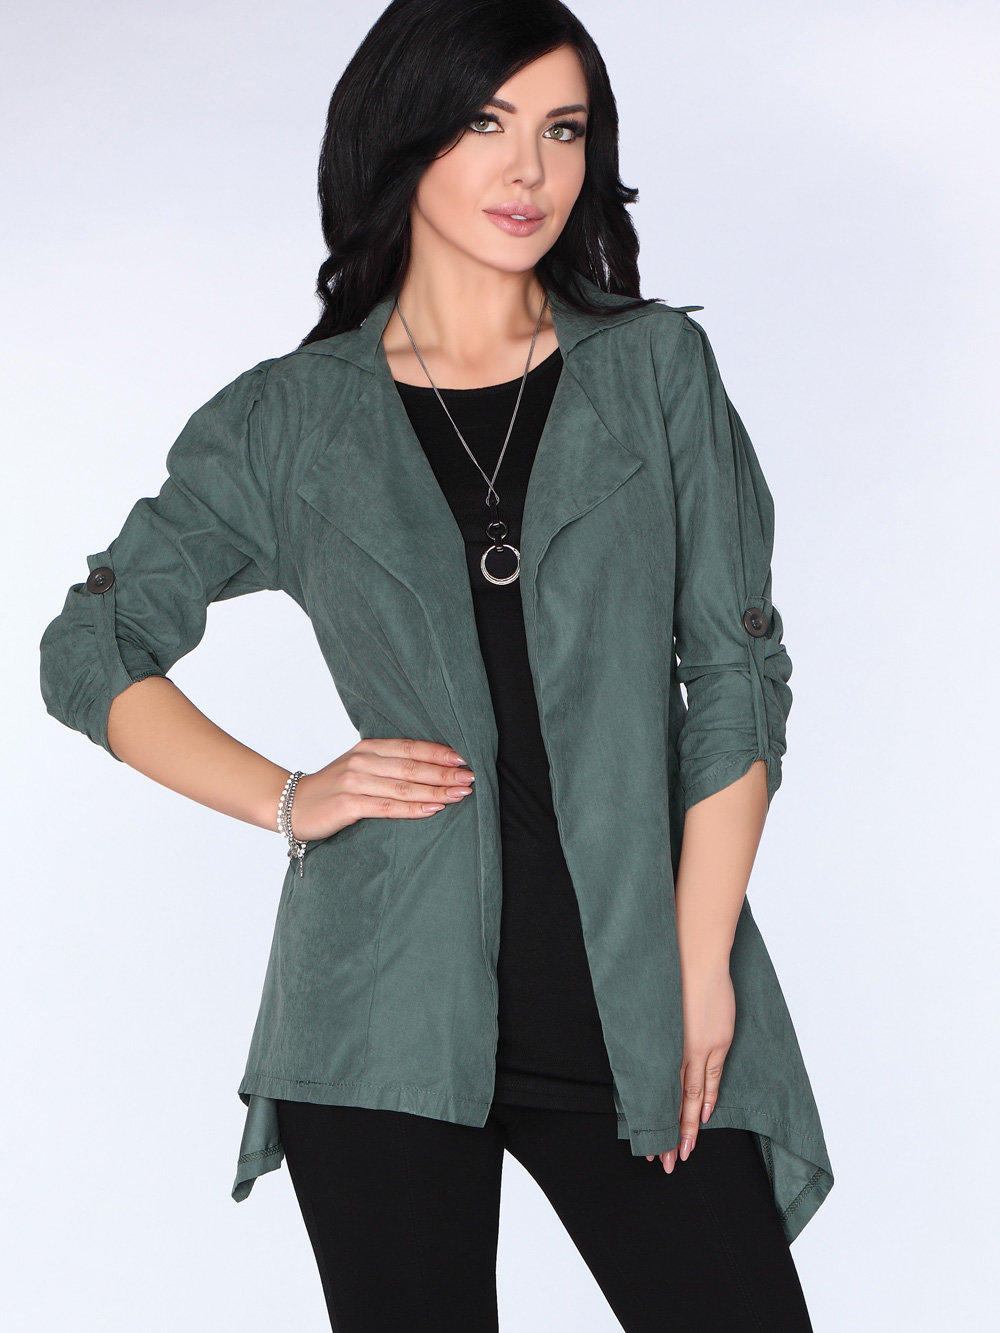 Merribel Cardigan CG026 Dark Green Verde